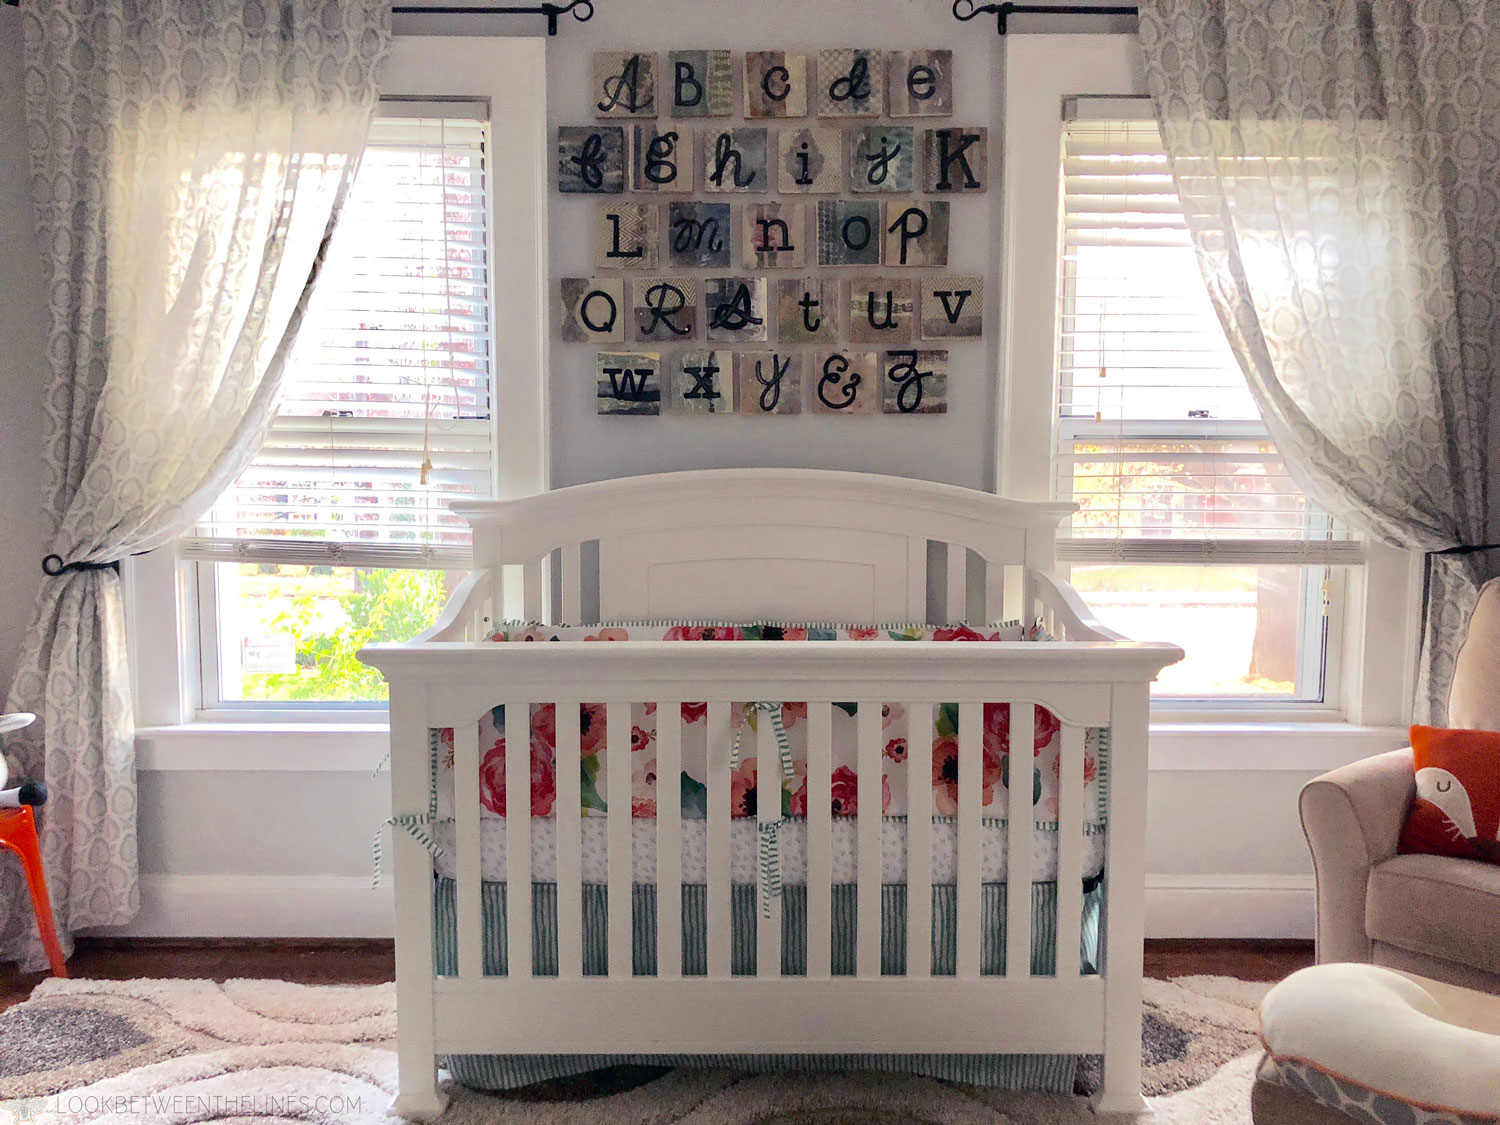 Baby girl's crib with a floral pattern bumper, bright windows, and the ABC's hanging on the wall.